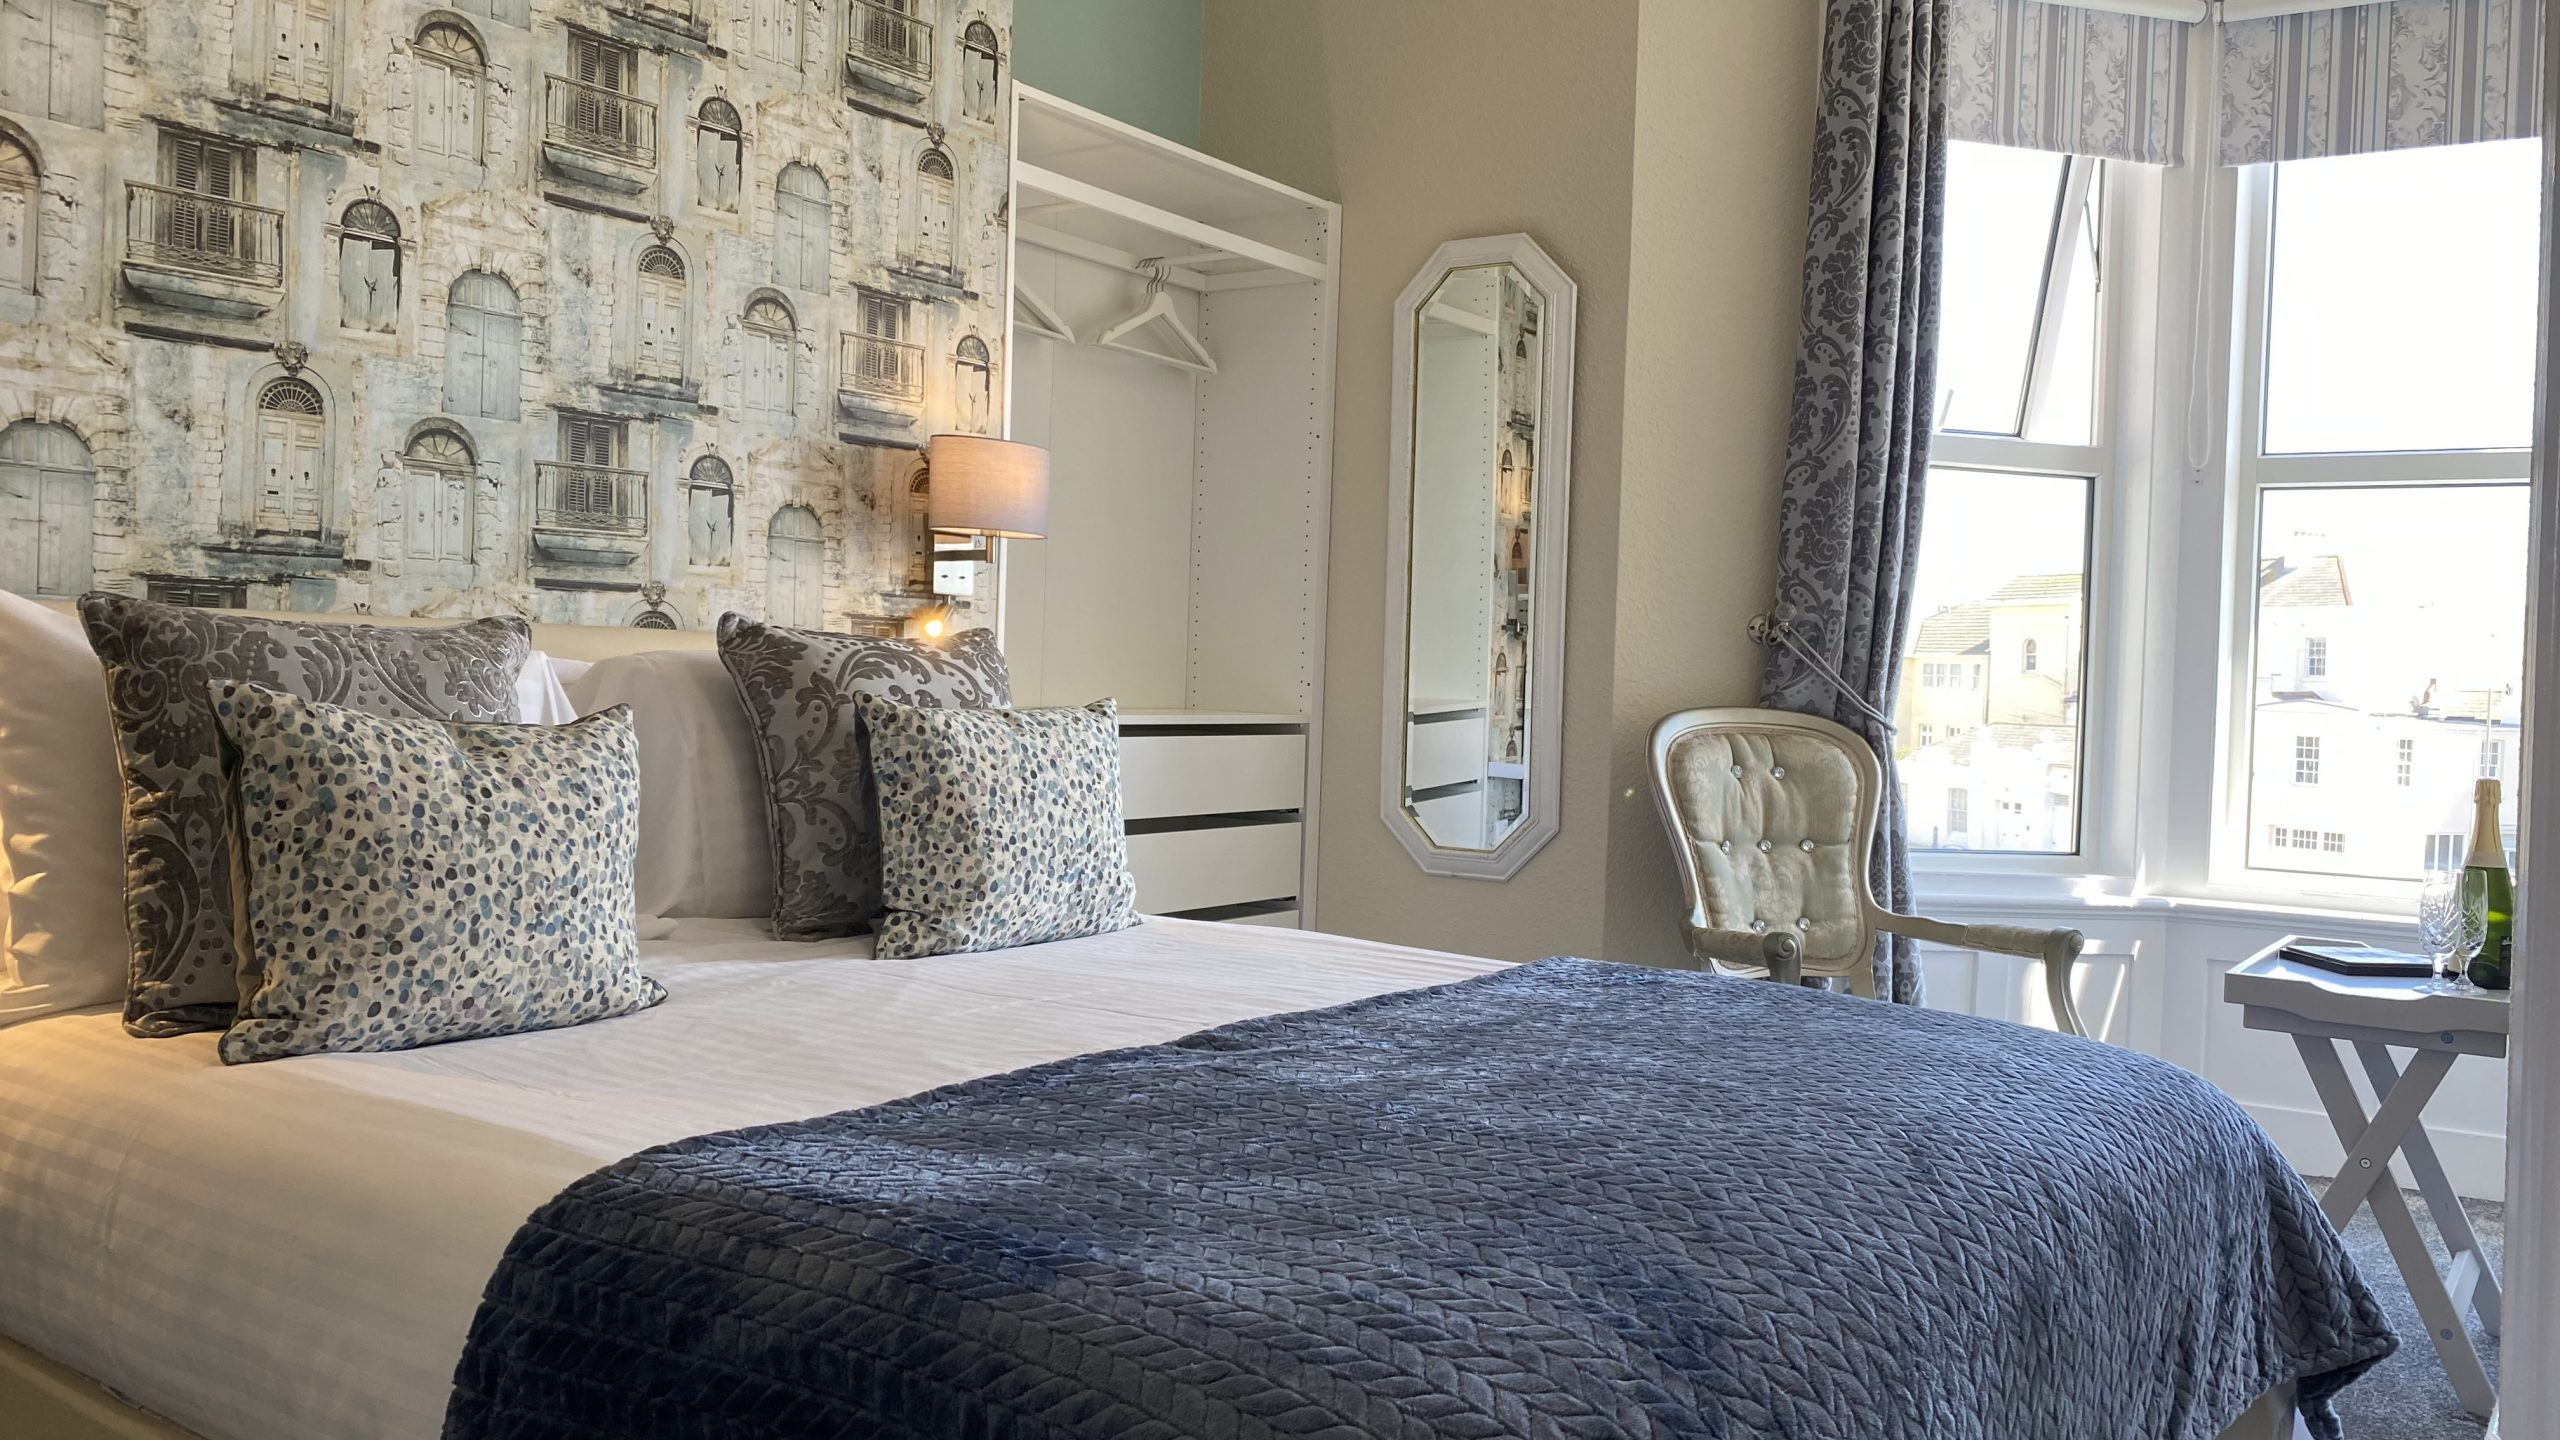 Superior King or Family Suite – sleeps 2/4